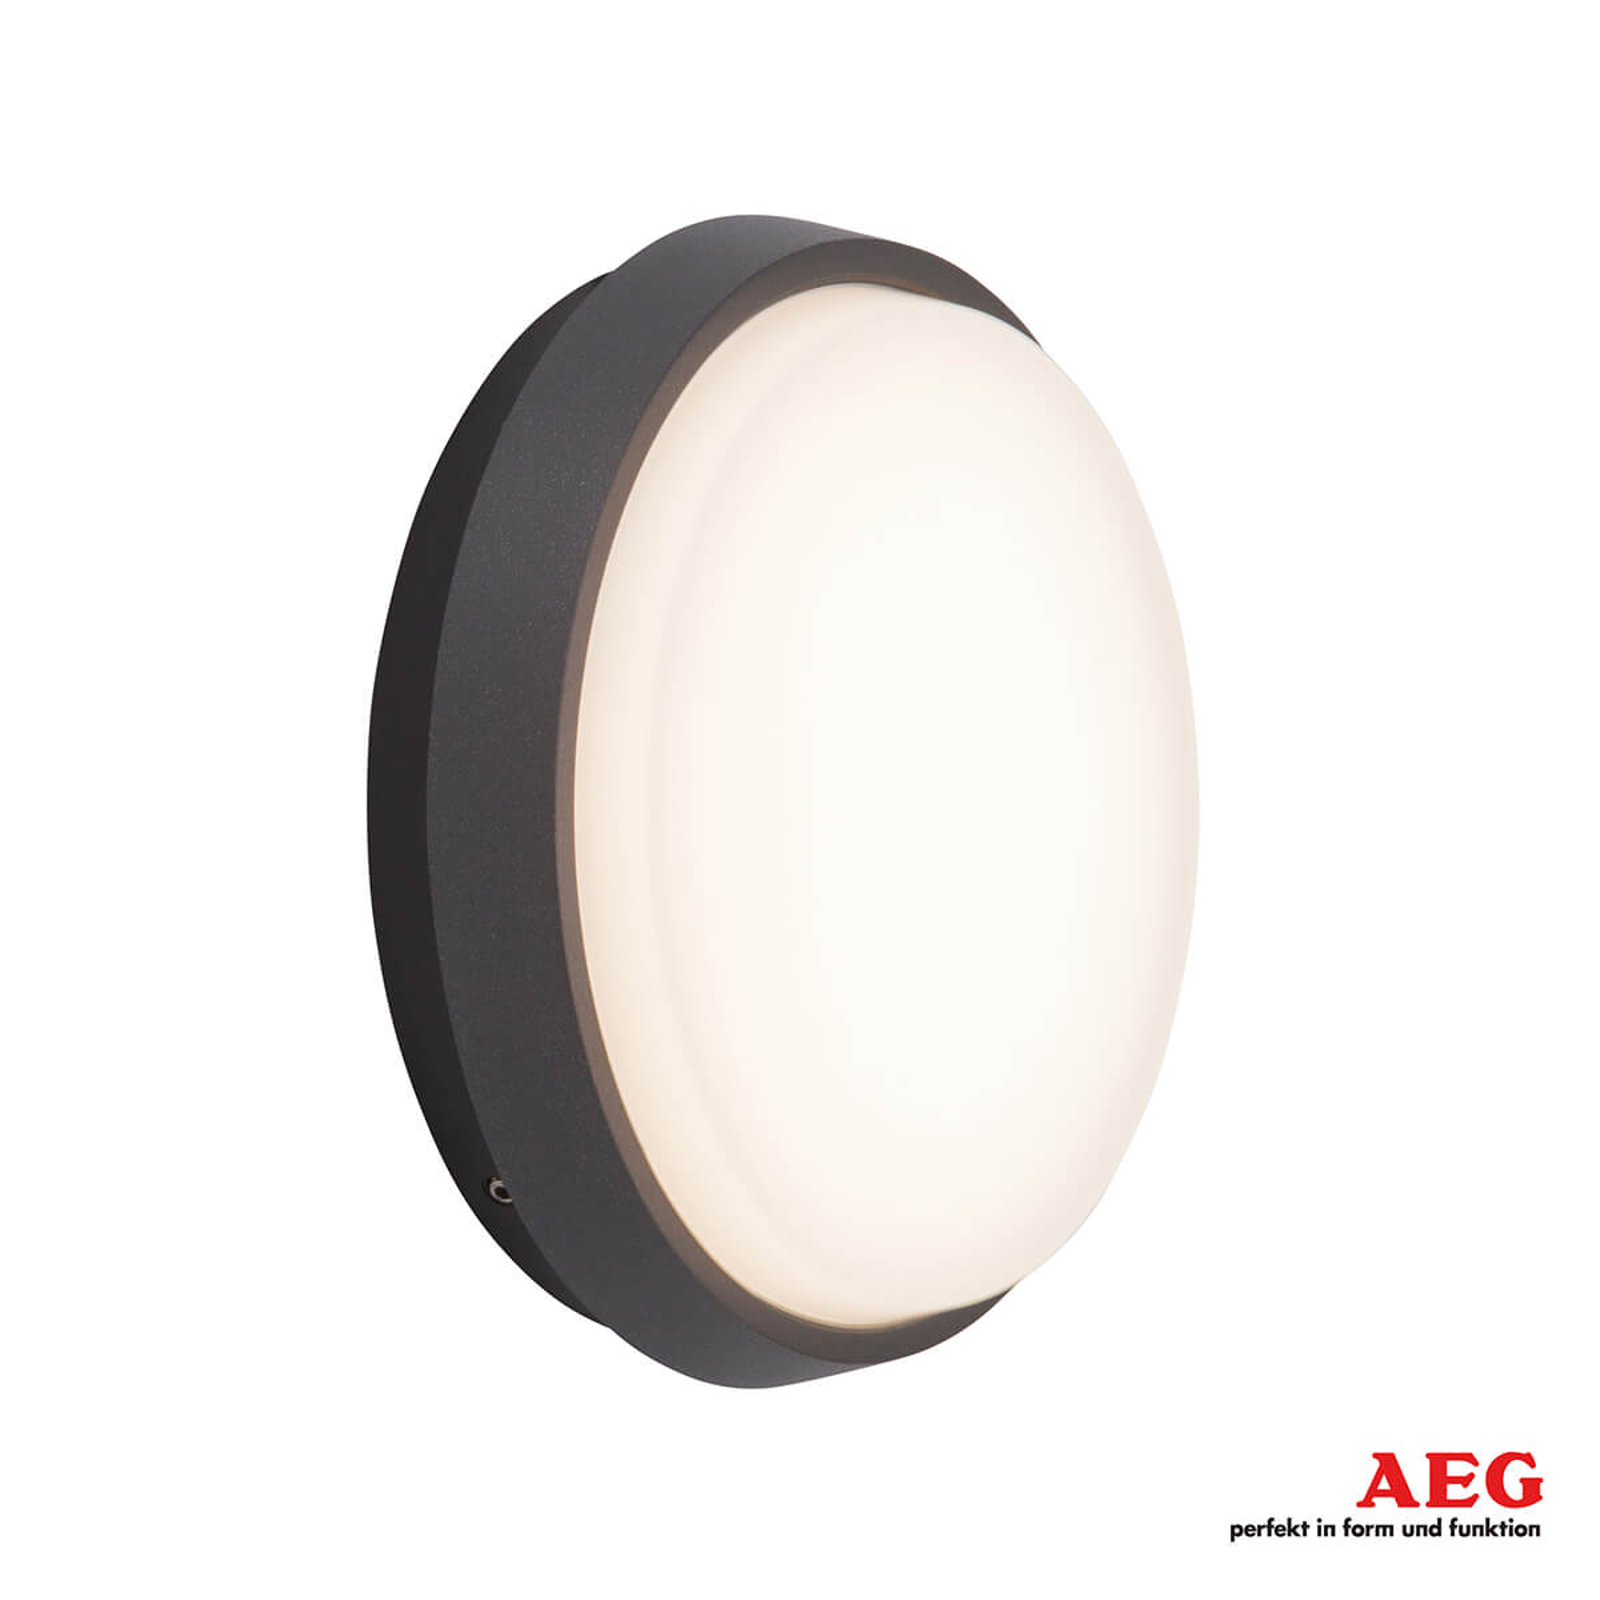 Letan Round LED outdoor wall light - 9 W_3057119_1